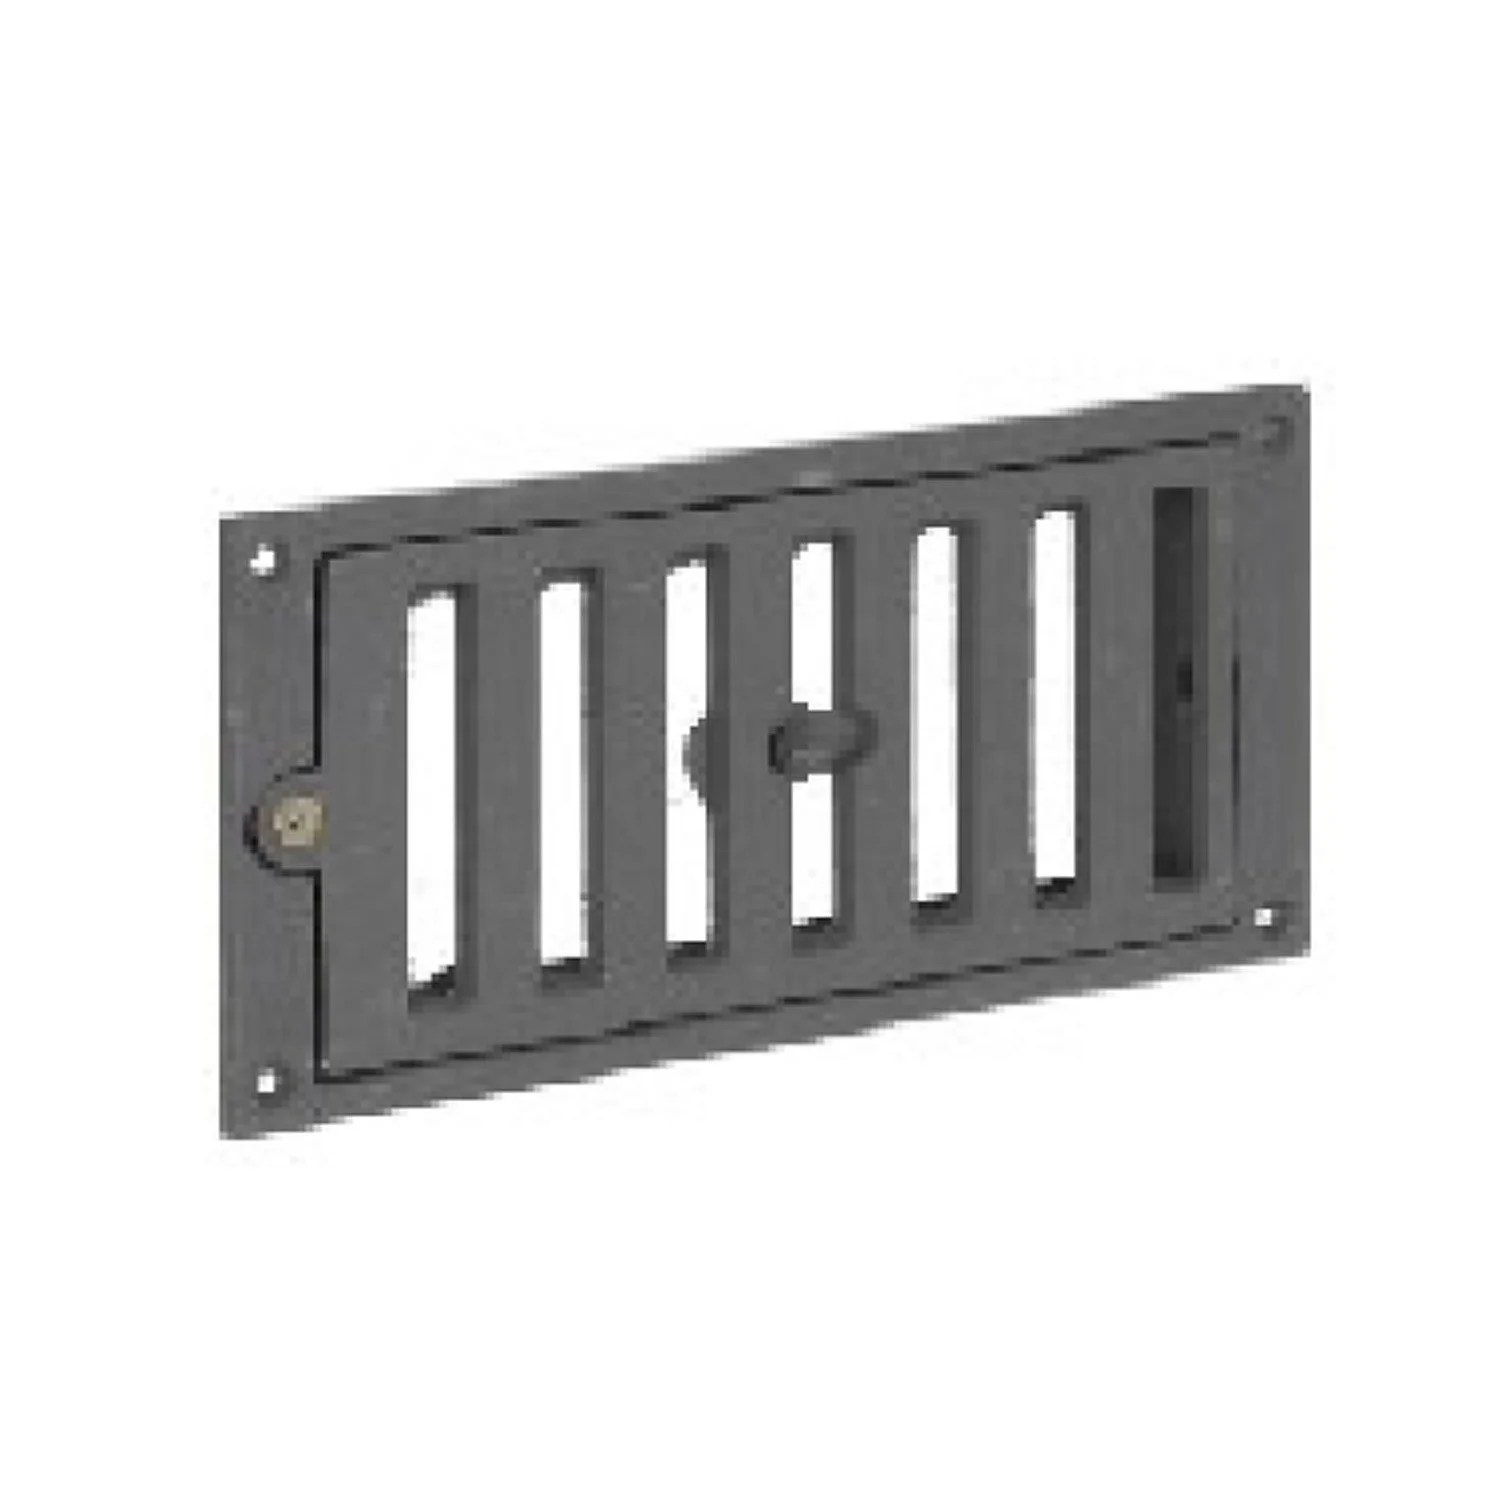 Insert Cheminee Air Exterieur Grille D 39entrée D 39air Frais Fonte Equation L 22 Cm X H 11